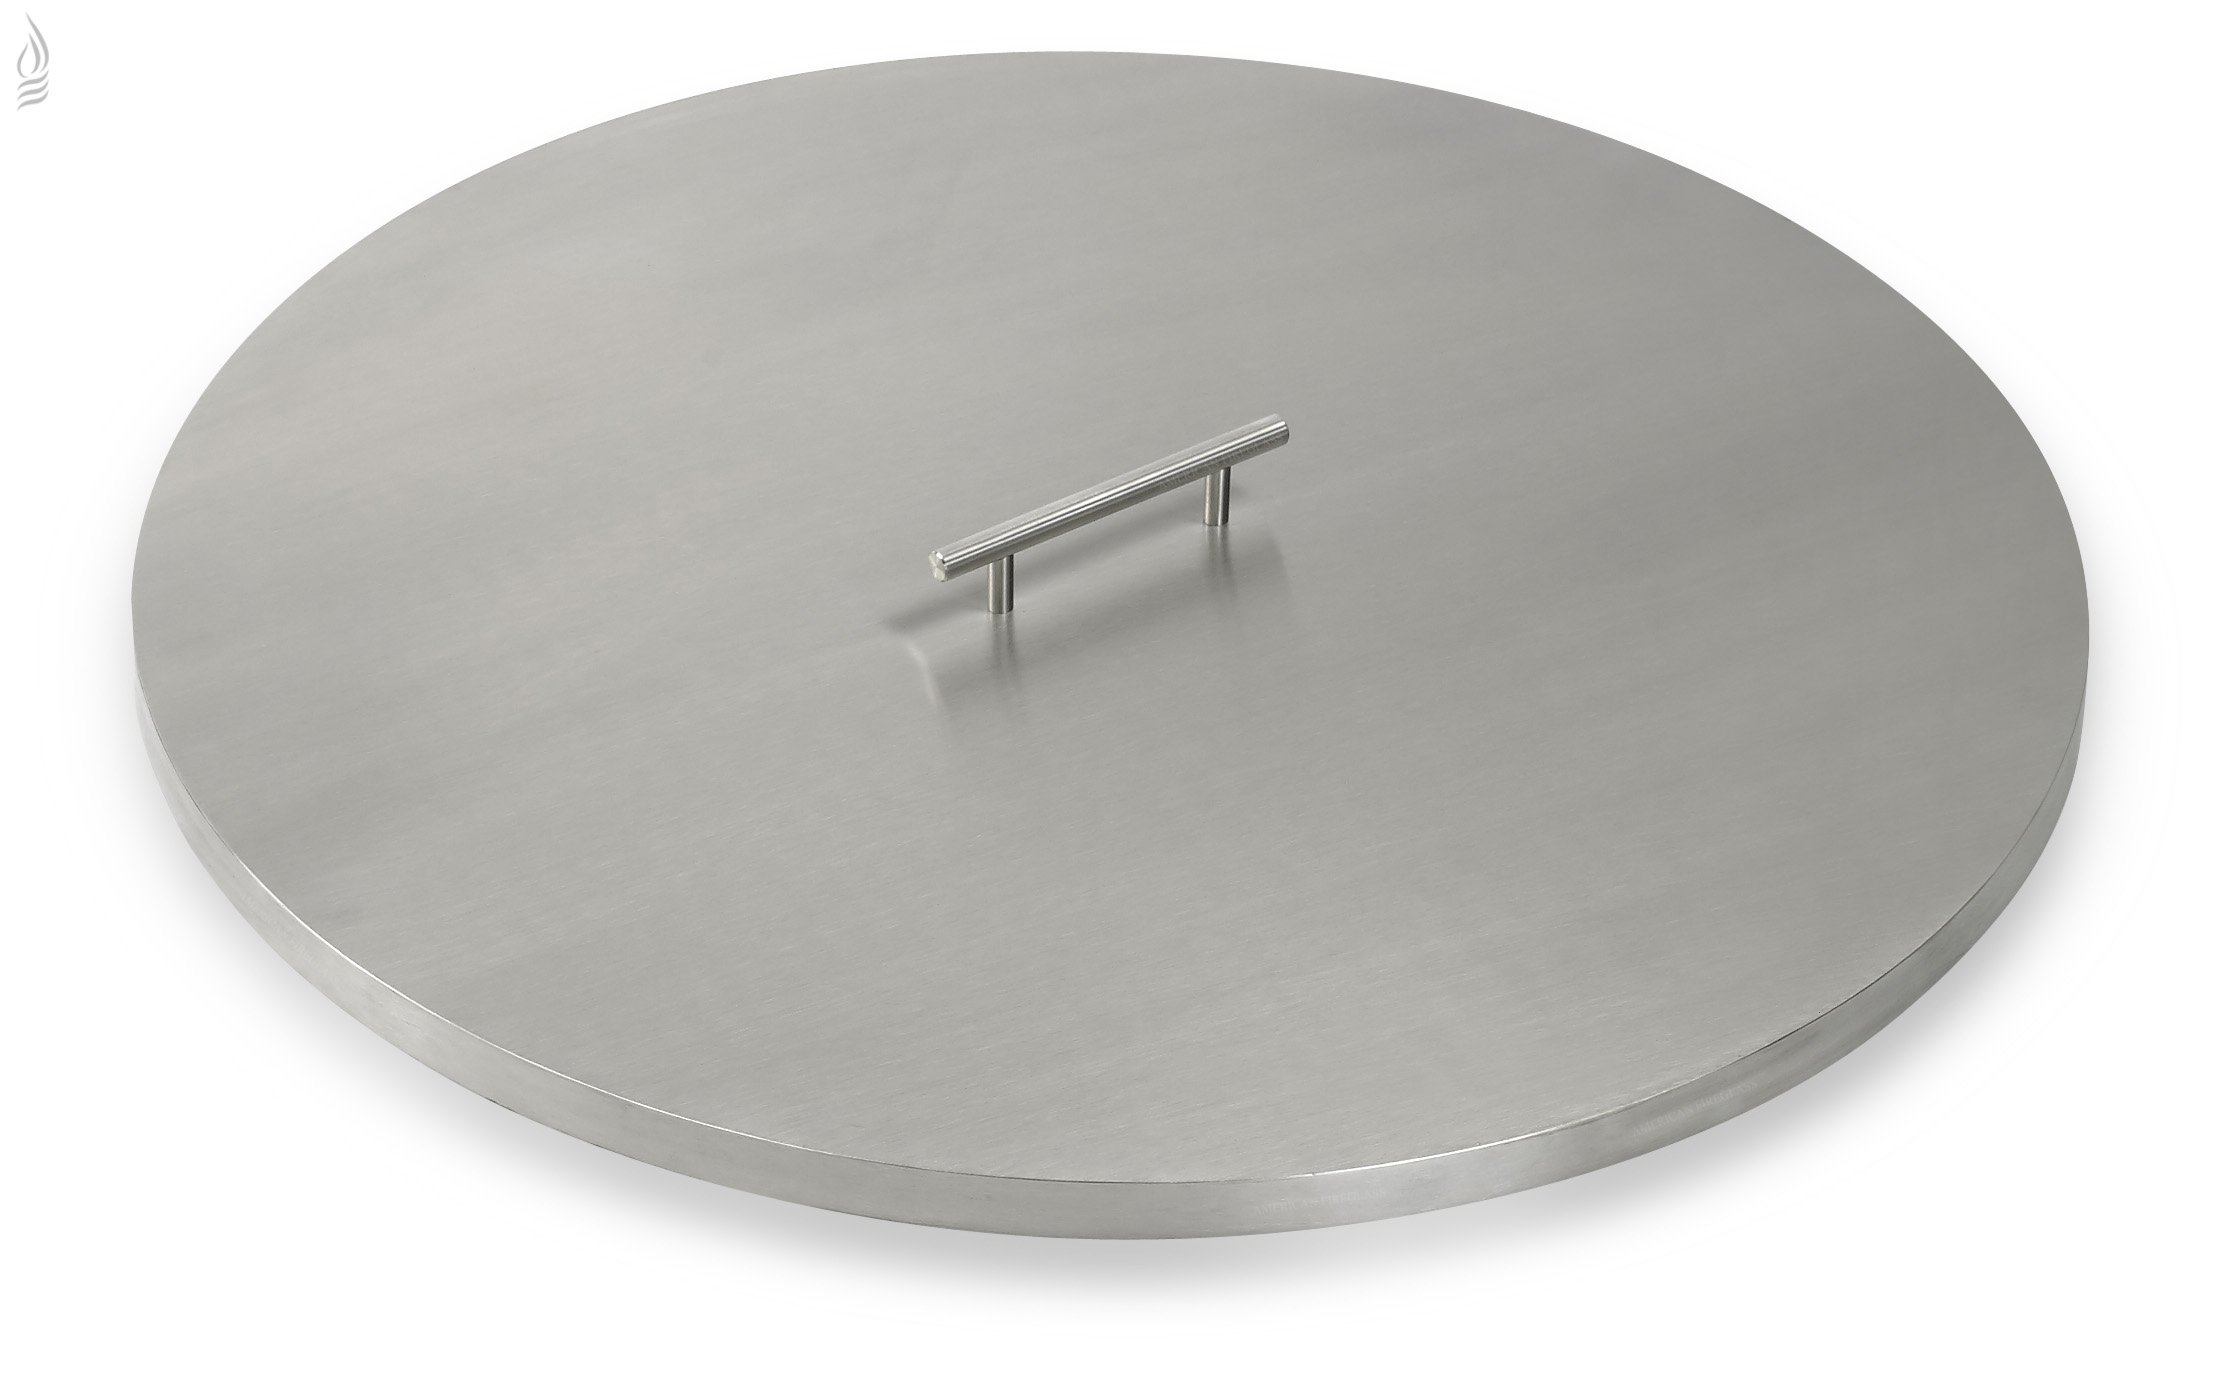 American Fireglass Stainless Steel Fire Pit Pan Covers Round (25 Inch)